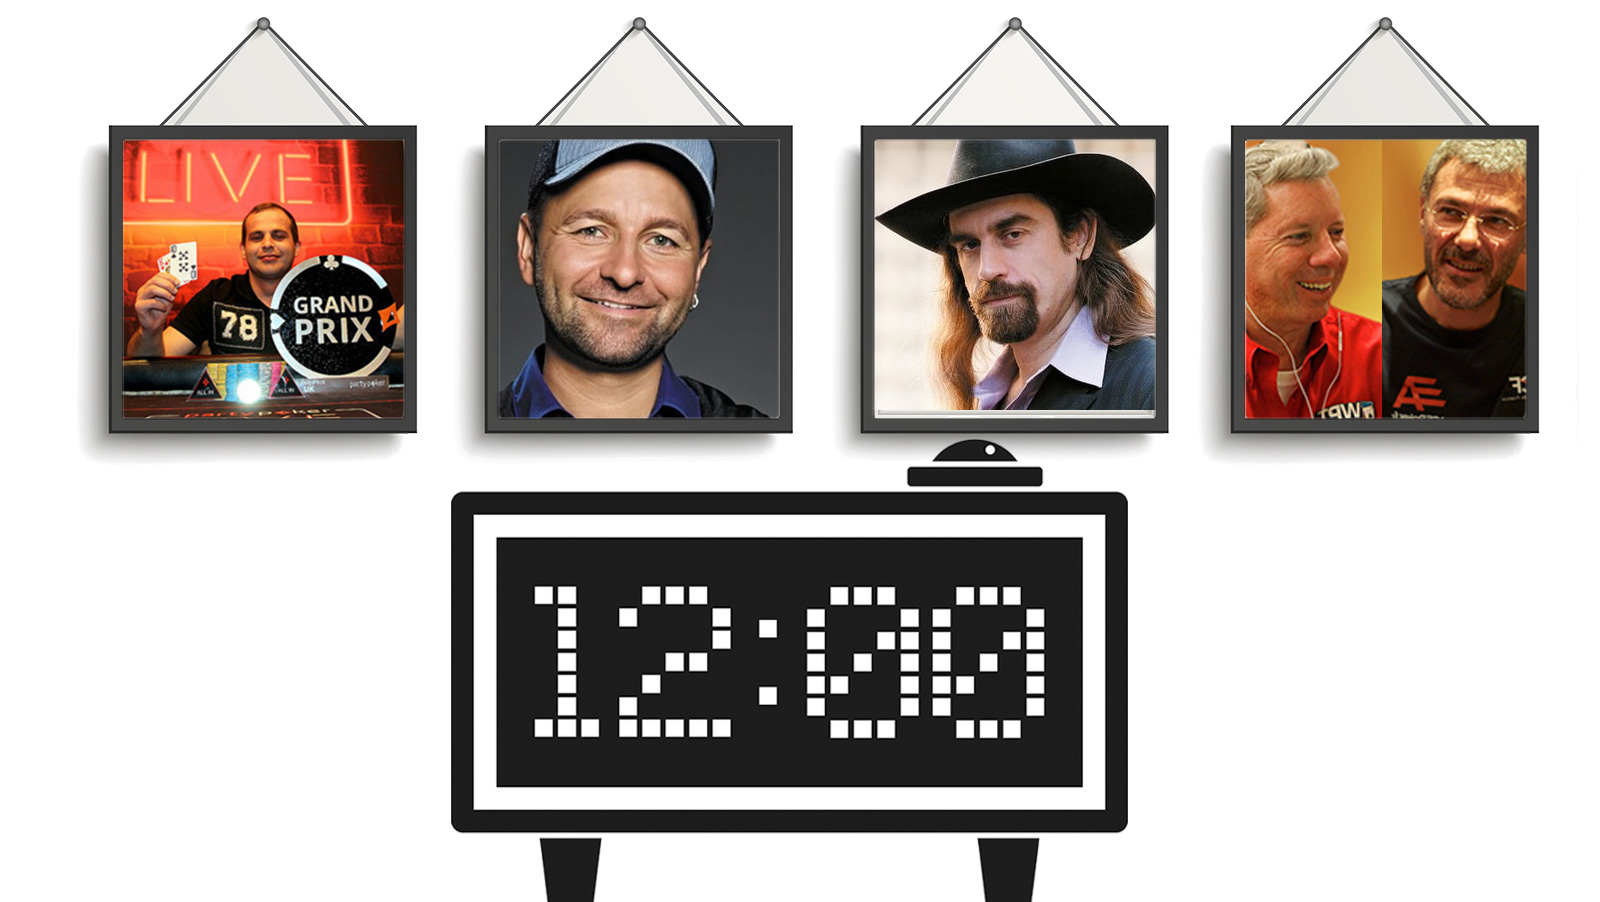 Calling the Clock: Jesus in POY contention; Party button ante; and more